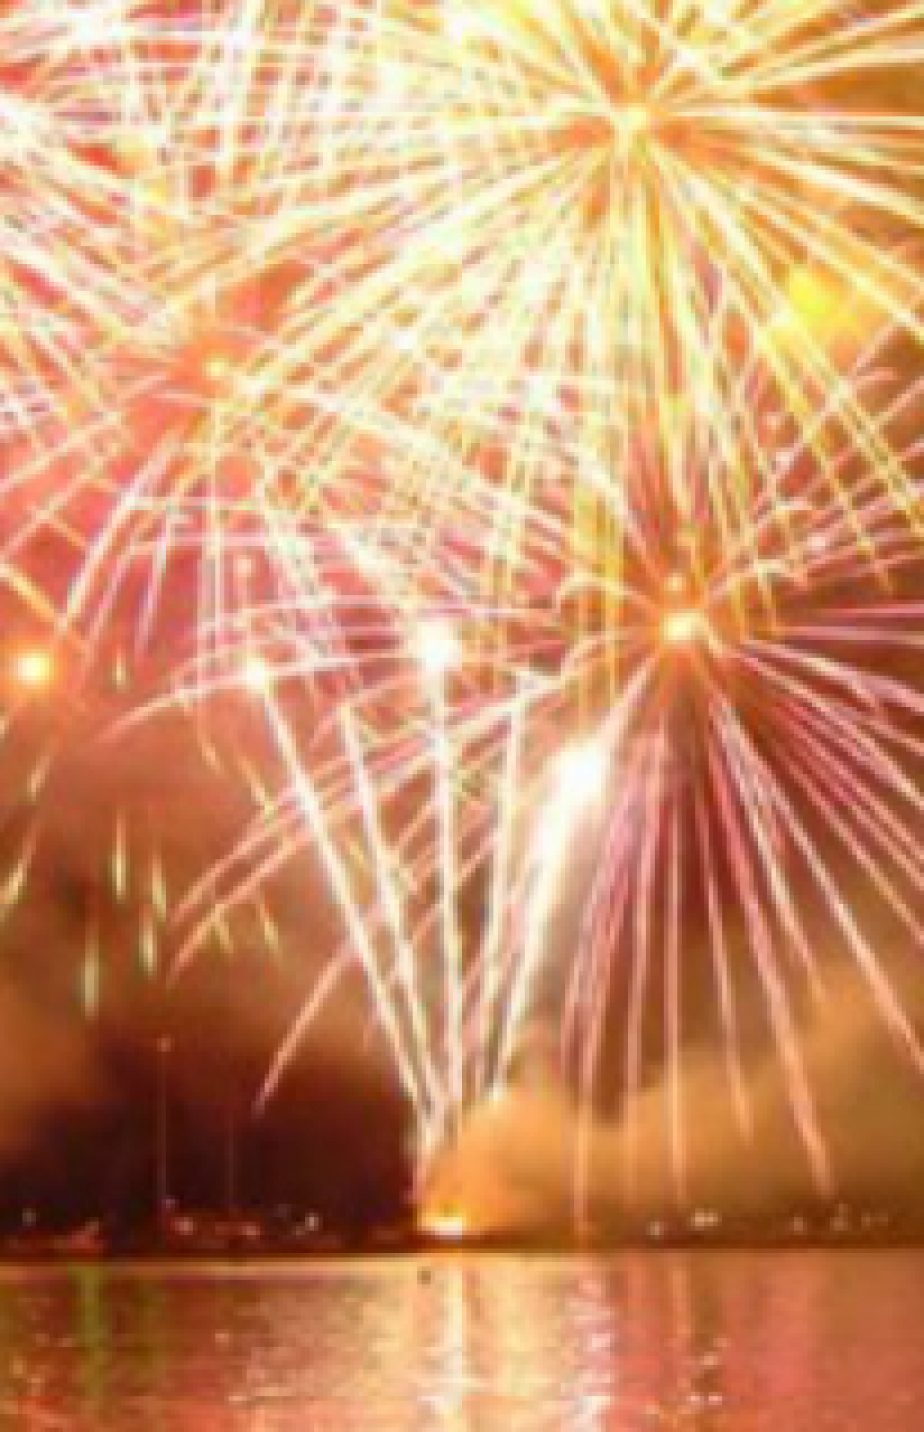 Firework Concert & Dinner on the 3.14 Plage – Saturday 15th August 2015